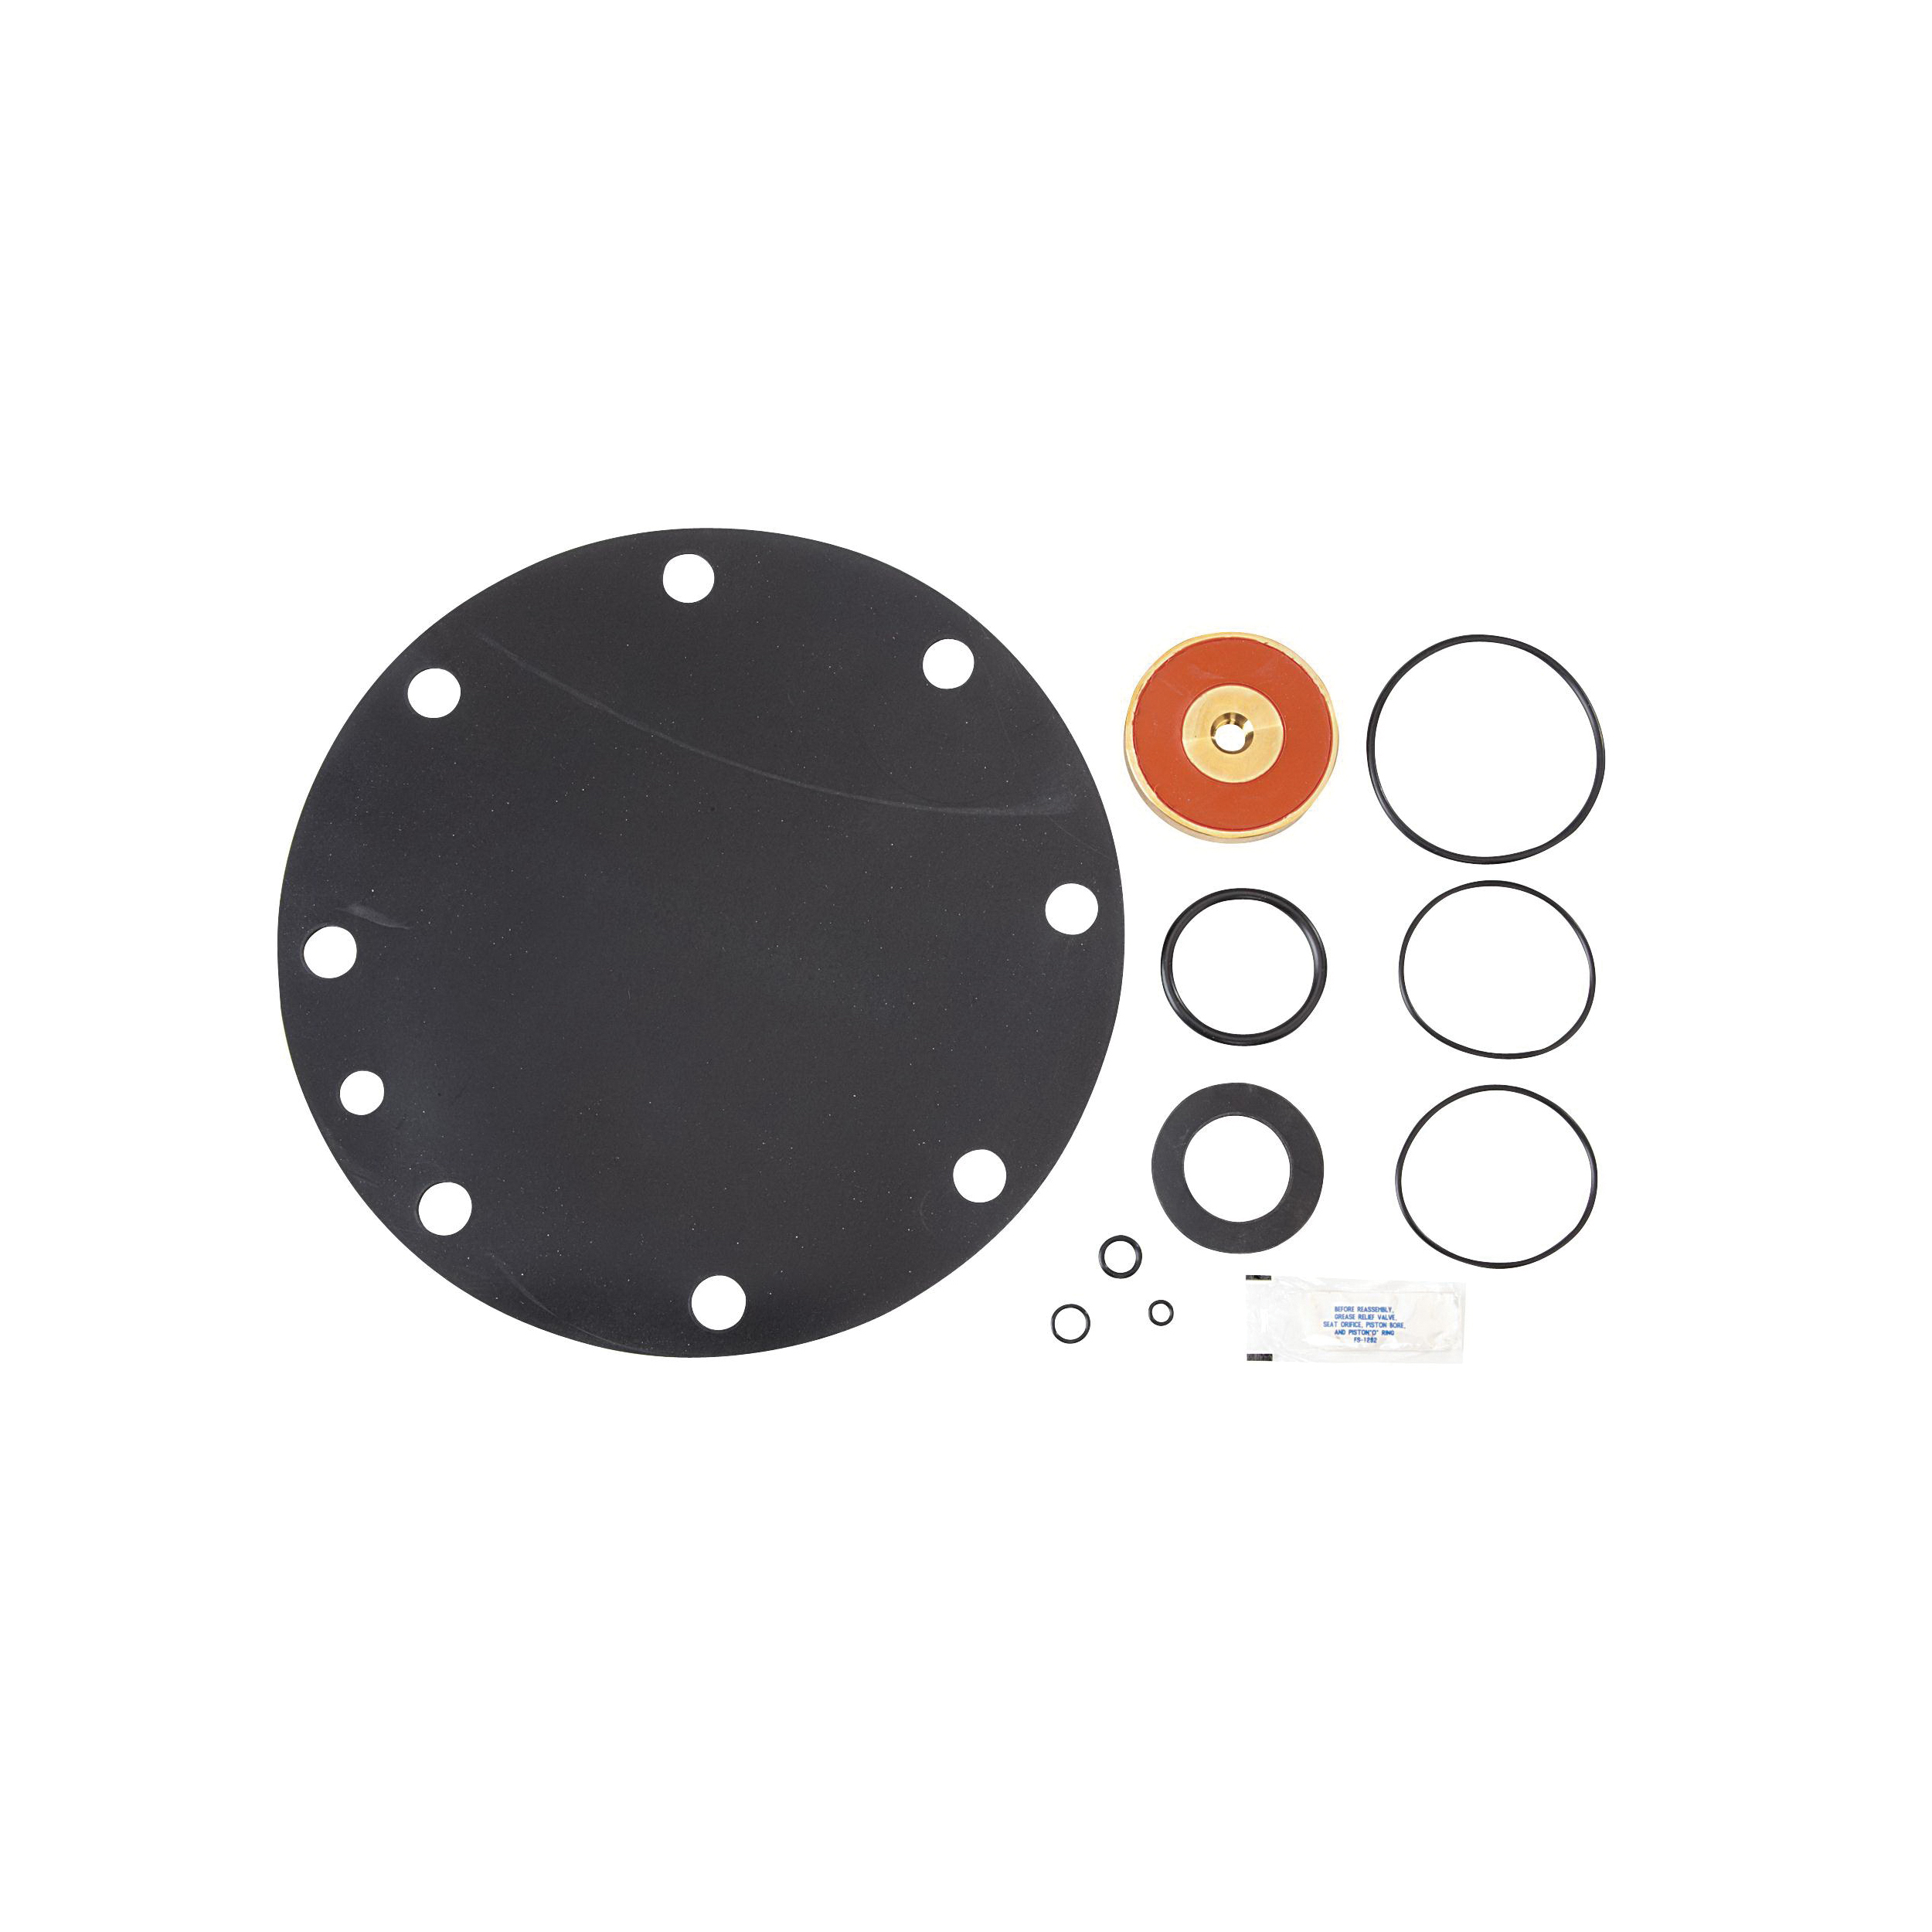 WATTS® 0794083 Relief Valve Rubber Parts Kit, For Use With 909 Series 8 to 10 in Reduced Pressure Zone Assemblies